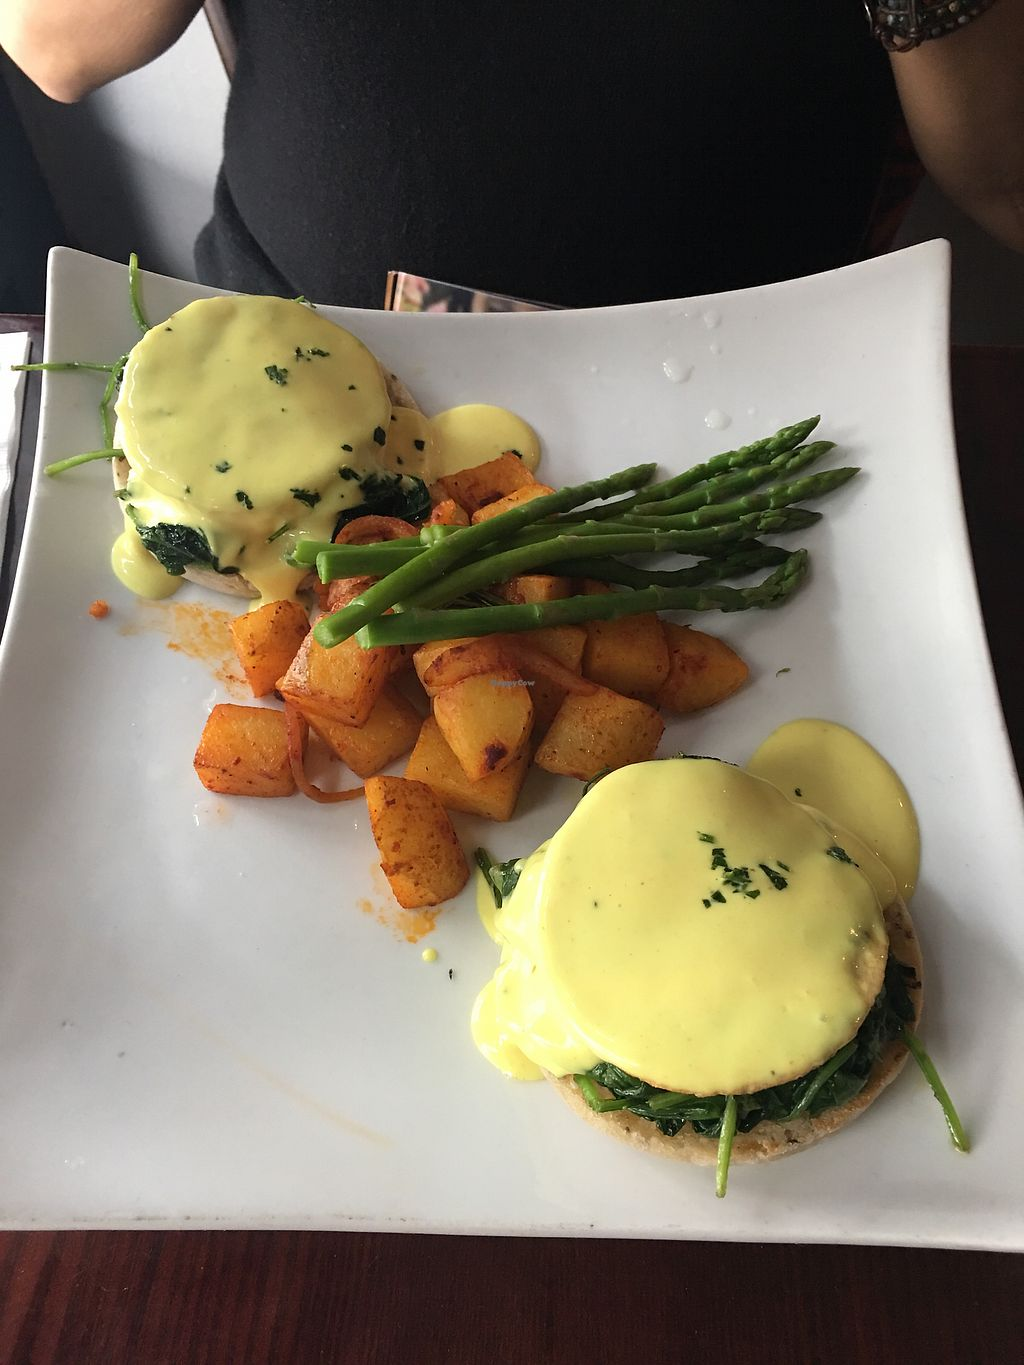 """Photo of Blossom Restaurant  by <a href=""""/members/profile/GloriaBila"""">GloriaBila</a> <br/>tofu Florentine with rosemary potatoes and asparagus  <br/> July 24, 2017  - <a href='/contact/abuse/image/6097/284399'>Report</a>"""